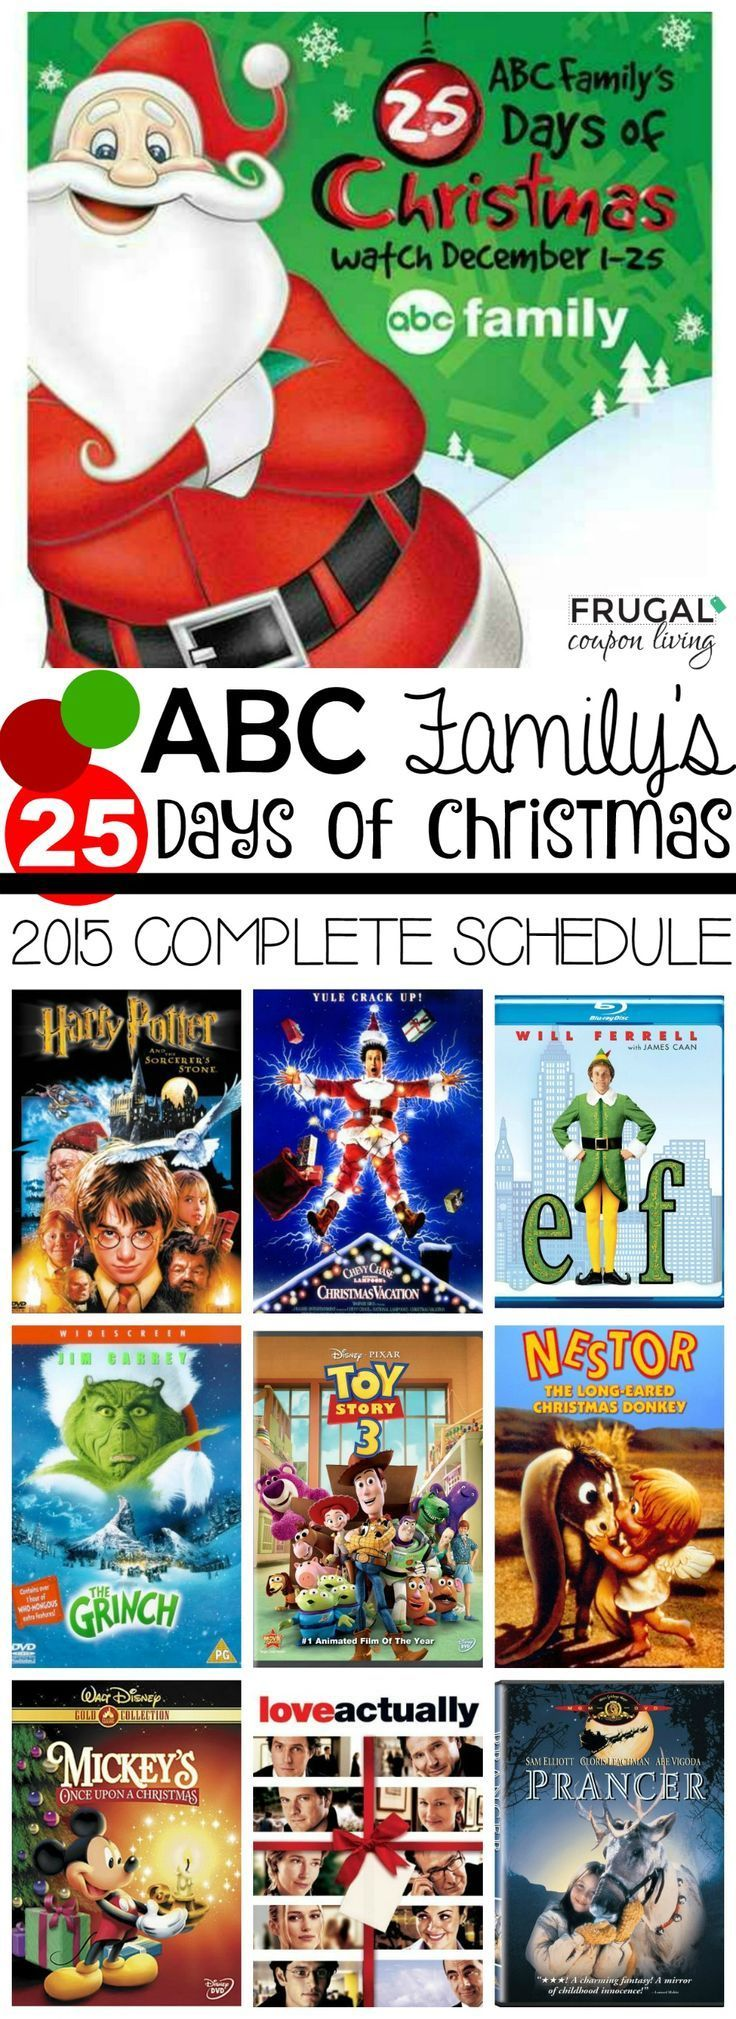 Abc scrapbook ideas list - 2015 Abc Family 25 Days Of Christmas Schedule Entire List Of Movies For The Entire